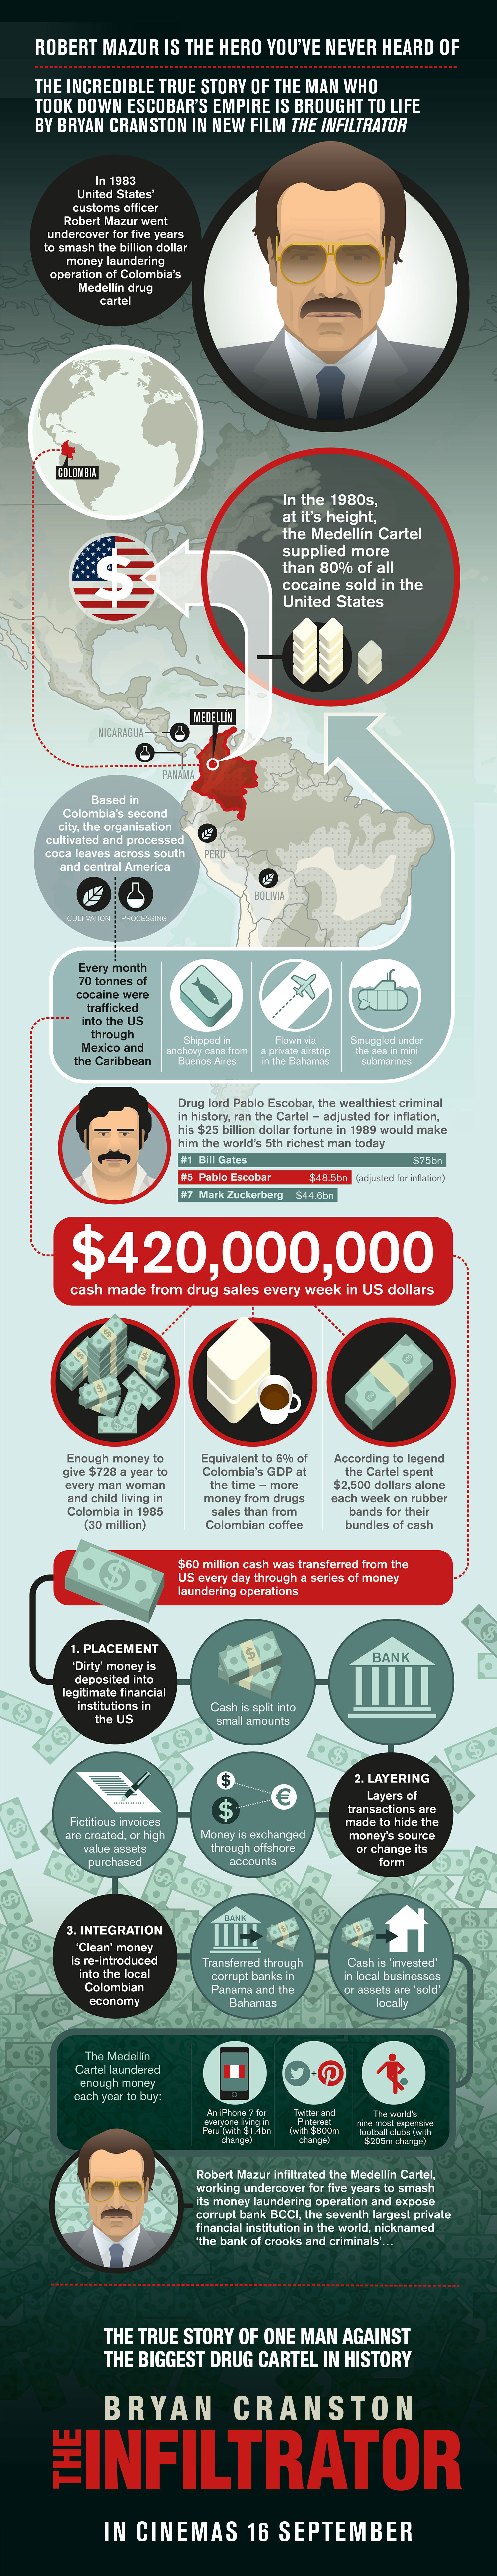 Heres How Rich Pablo Escobar Would Be If He Was Alive Today Infiltrator BIG2 1